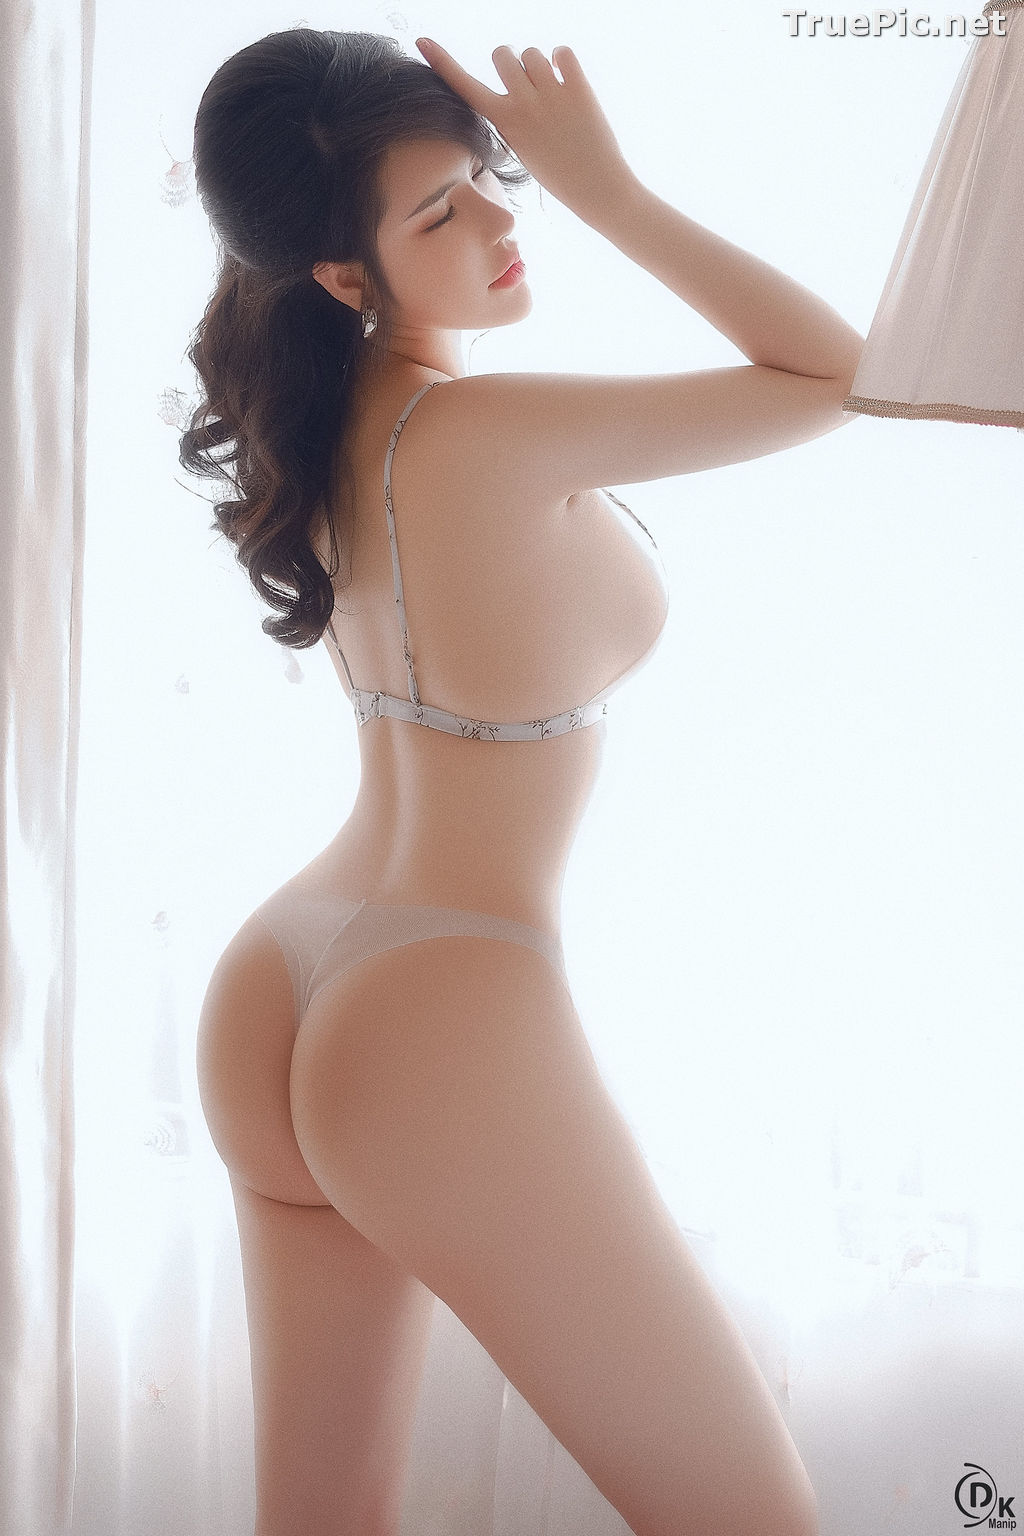 Image Vietnamese Model - Beautiful Girl in Sexy Transparent White Lingerie - TruePic.net - Picture-9